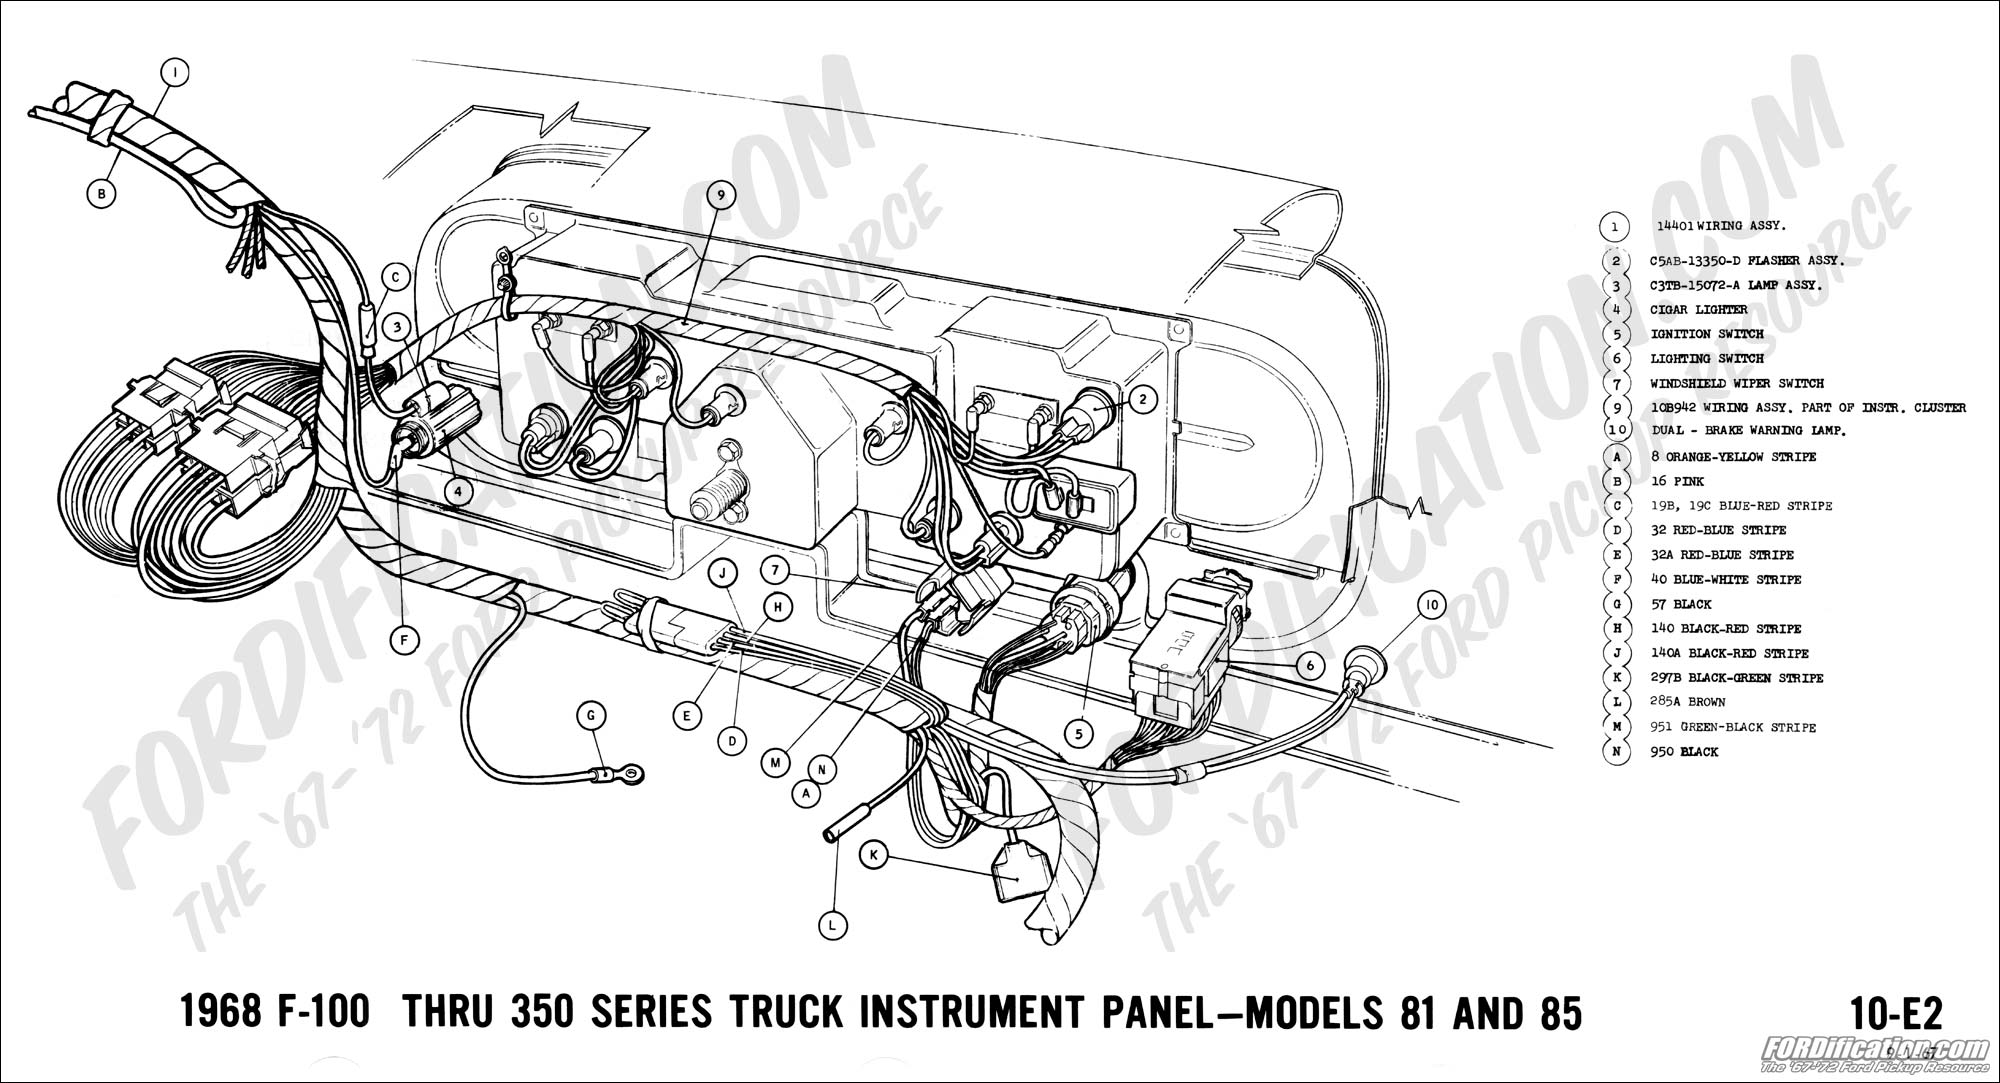 1973 Camaro Wiring Diagram. Wiring. Wiring Diagrams Instructions